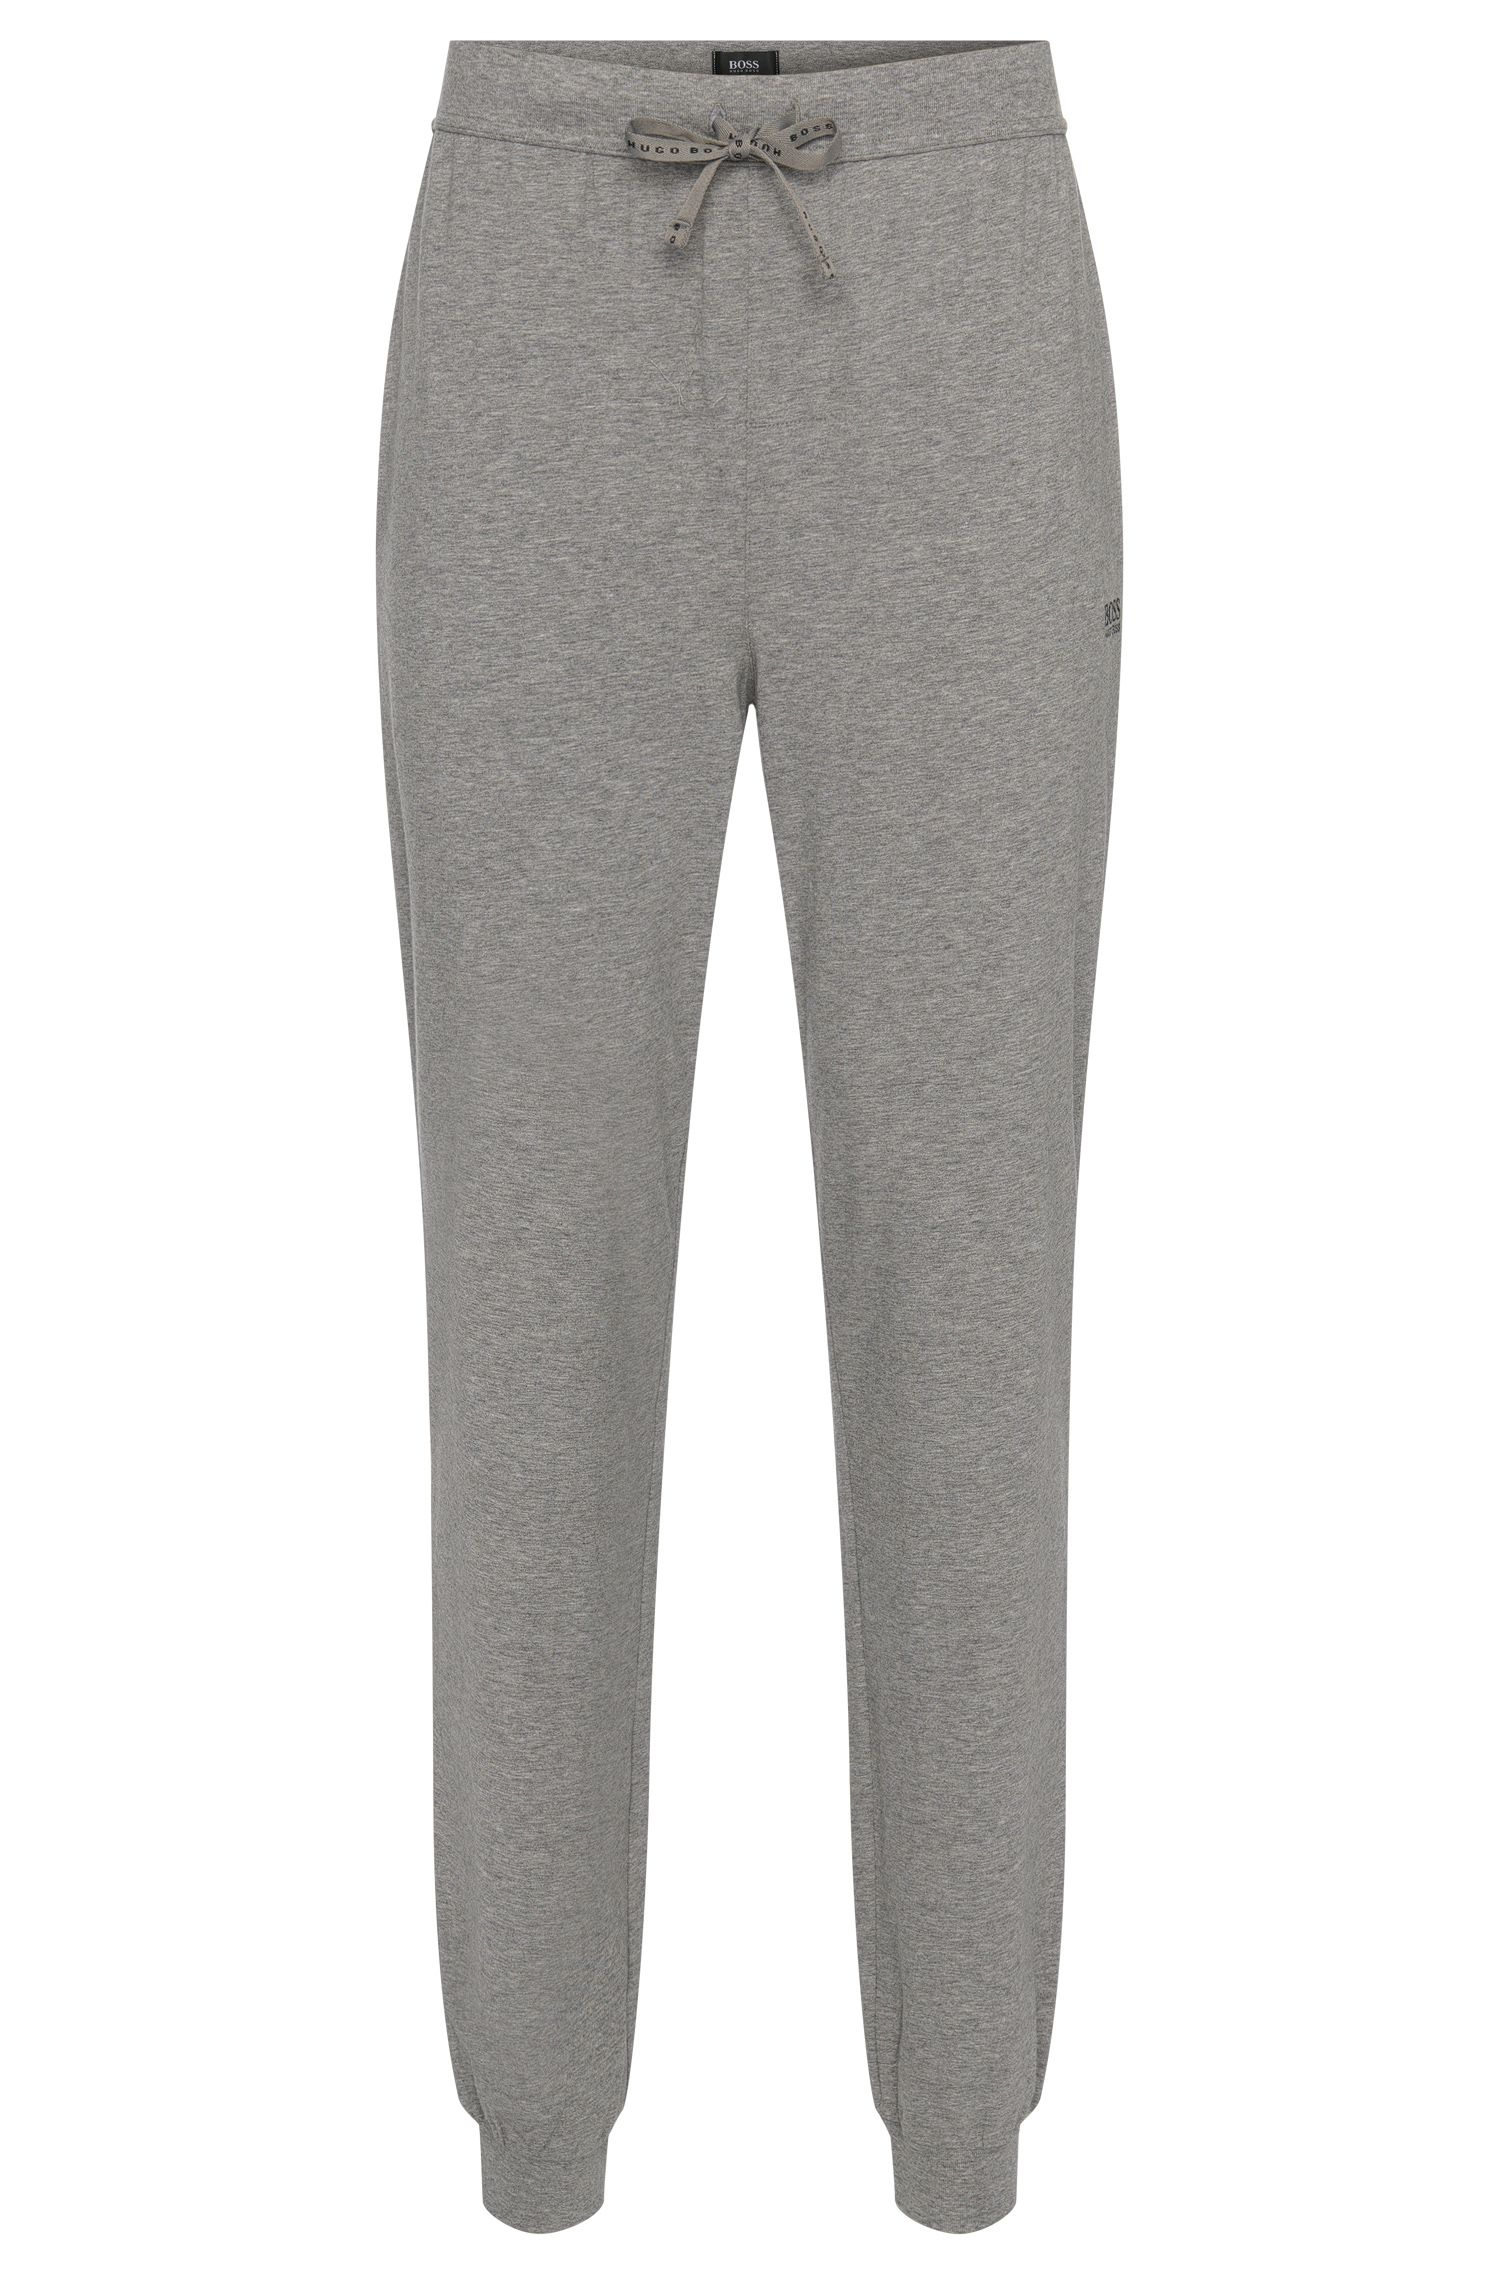 Pantalon sweat en coton stretch avec cordon de serrage : « Long Pant CW Cuffs », Gris